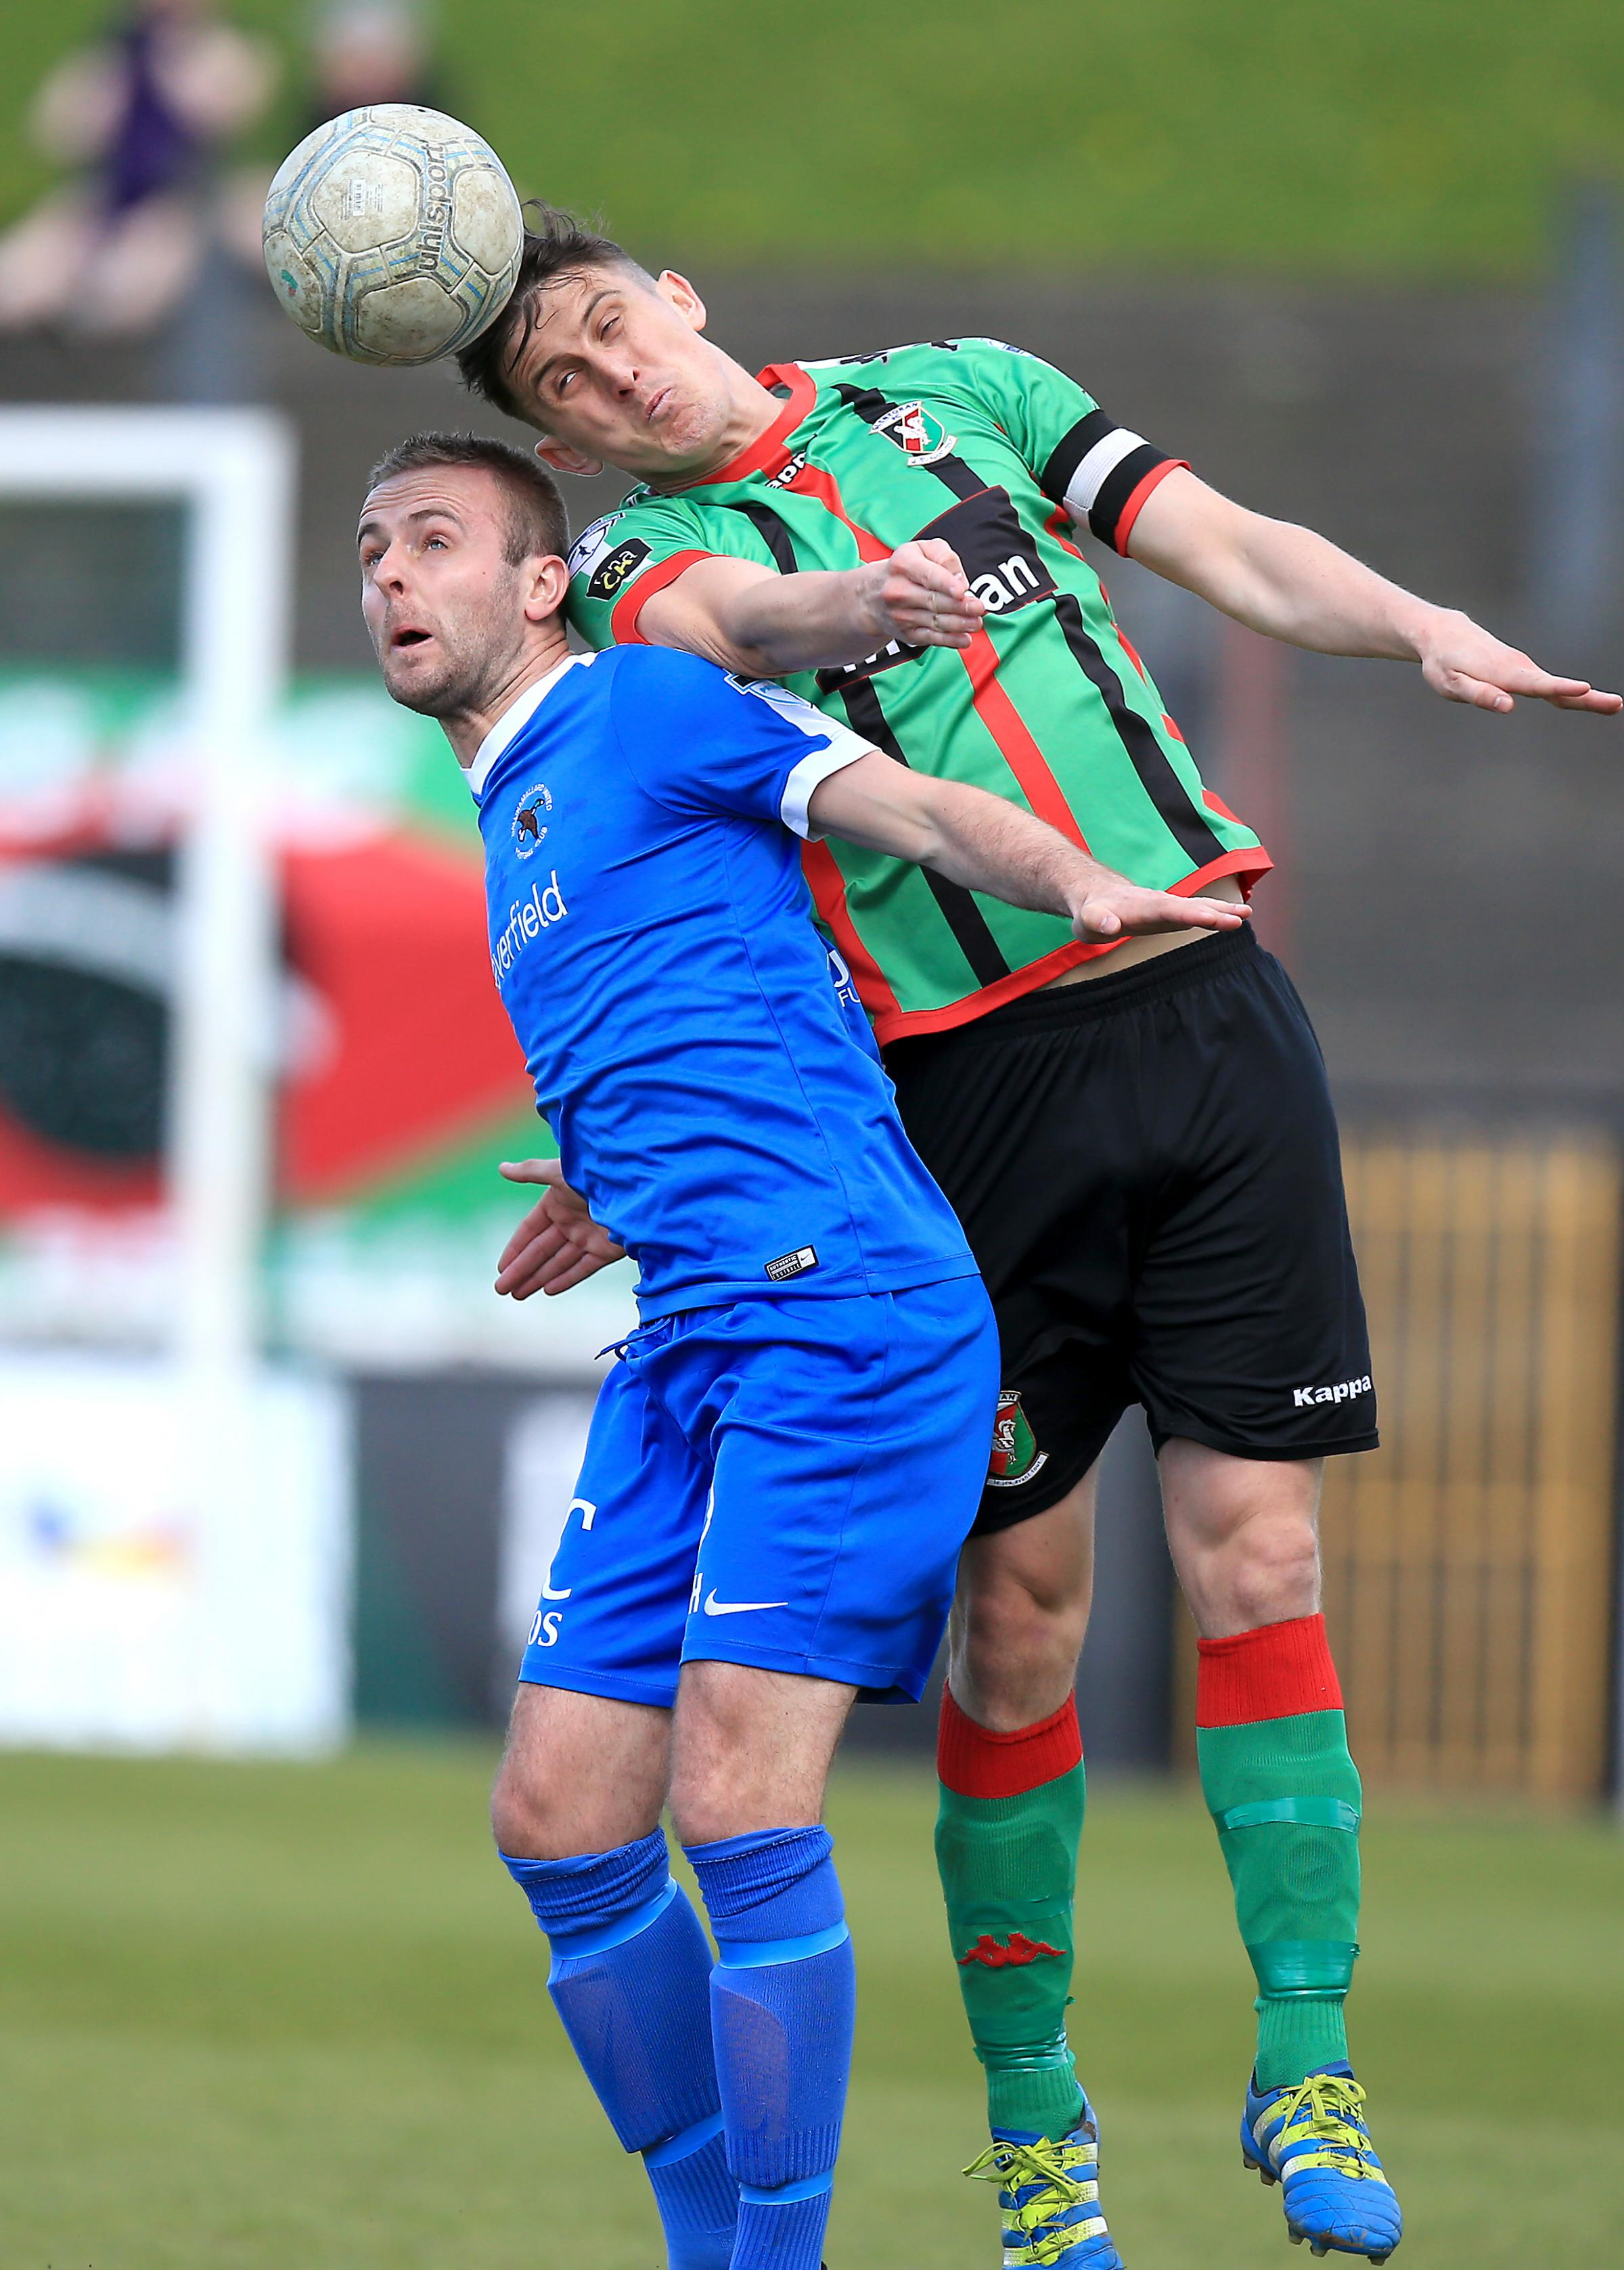 Ballinamallard captain Richard Clarke is hoping they can end their losing streak.